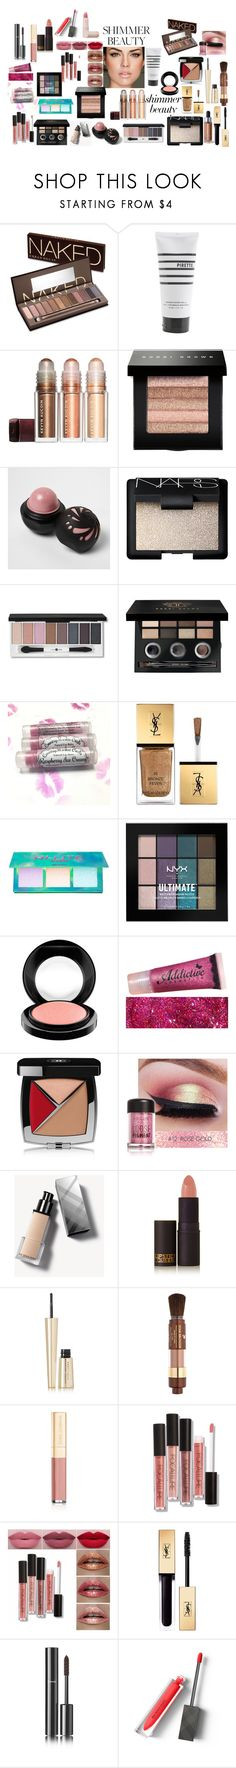 """Sans titre #659"" by susanaxalex ❤ liked on Polyvore featuring beauty, Urban Decay, Pirette, Bobbi Brown Cosmetics, River Island, NARS Cosmetics, Yves Saint Laurent, Lime Crime, NYX and MAC Cosmetics"